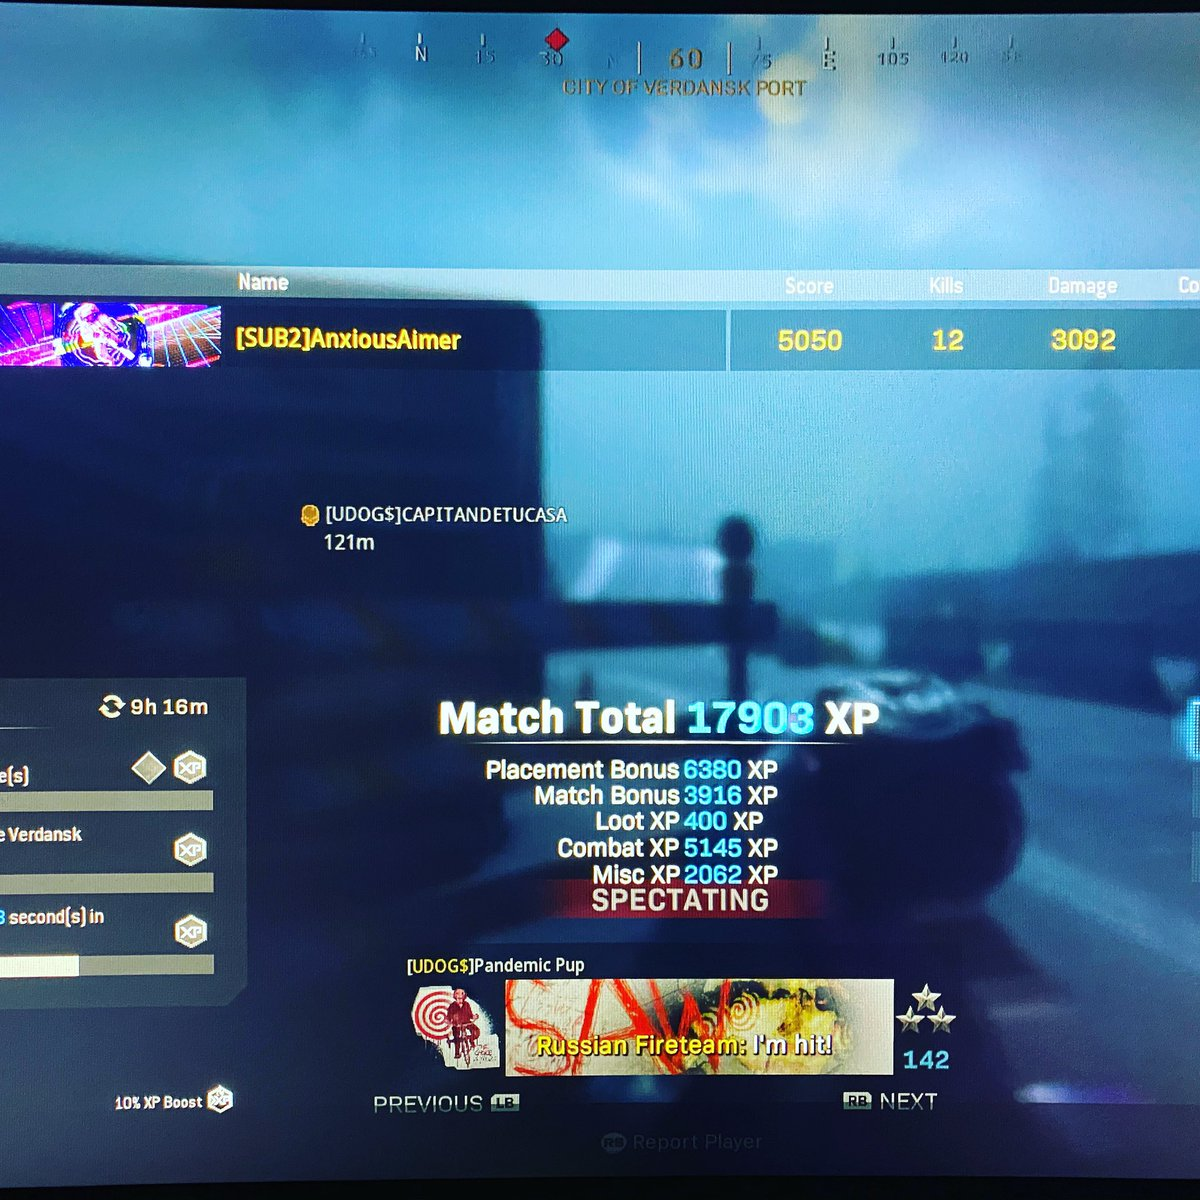 First run of the new zombie mode update last night. Wasn't great but man was it fun, they got something going with this!!! @activision @treyarch @callofduty #callofdutywarzone #battleroyale #CODTopPlays #codclips #callofduty #callofdutymodernwarfare #warzone #warzoneclips #twitch https://t.co/Azk1GUe6du